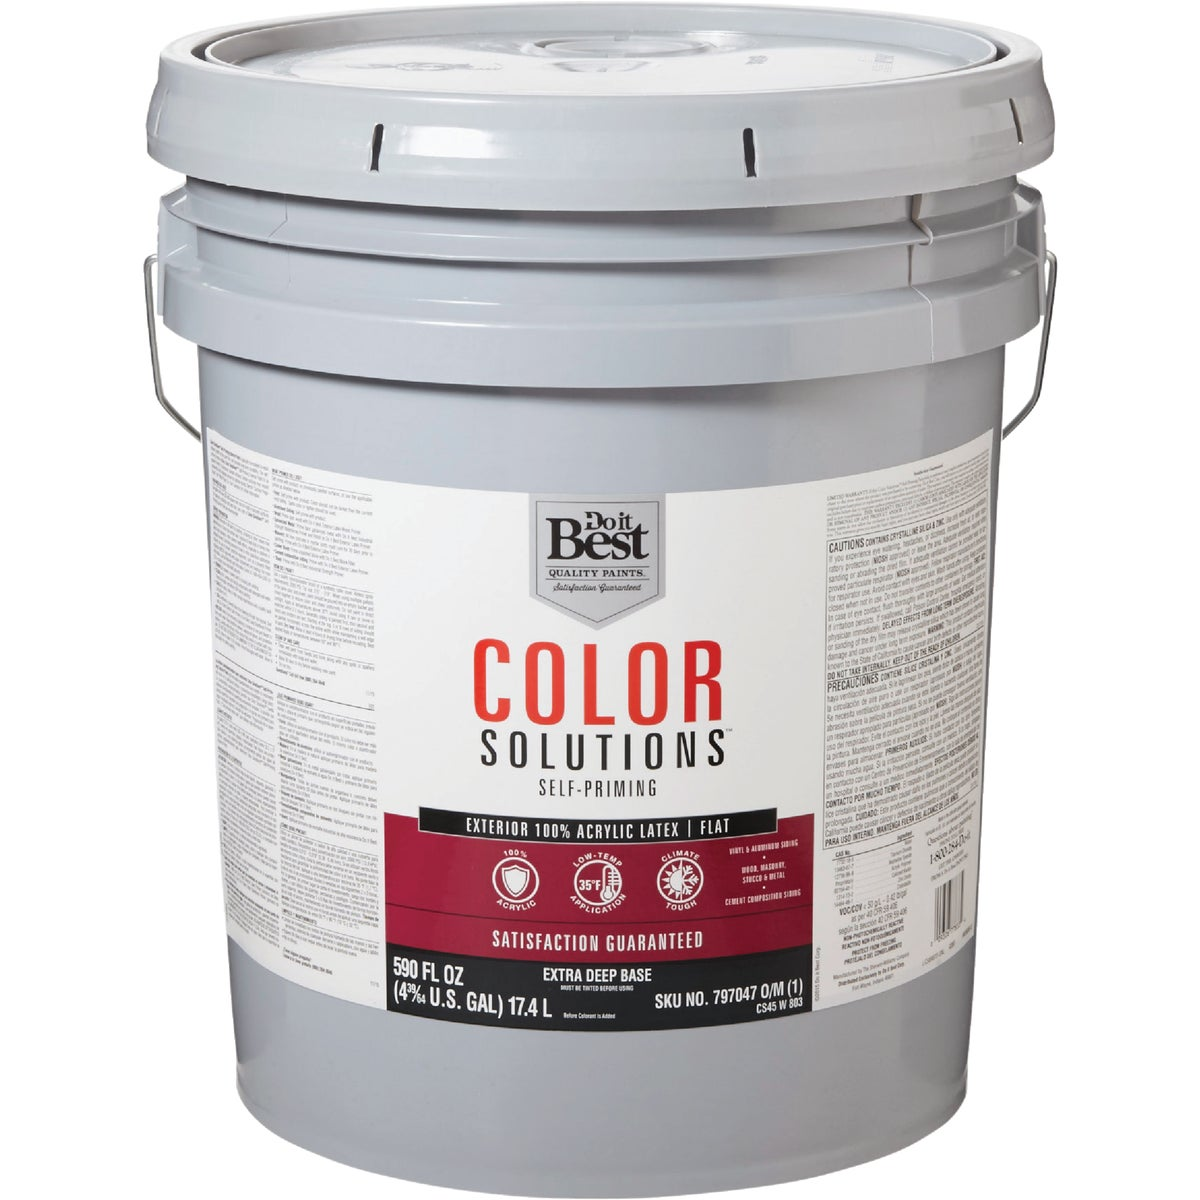 EXT FLT EX DEEP BS PAINT - CS45W0803-20 by Do it Best